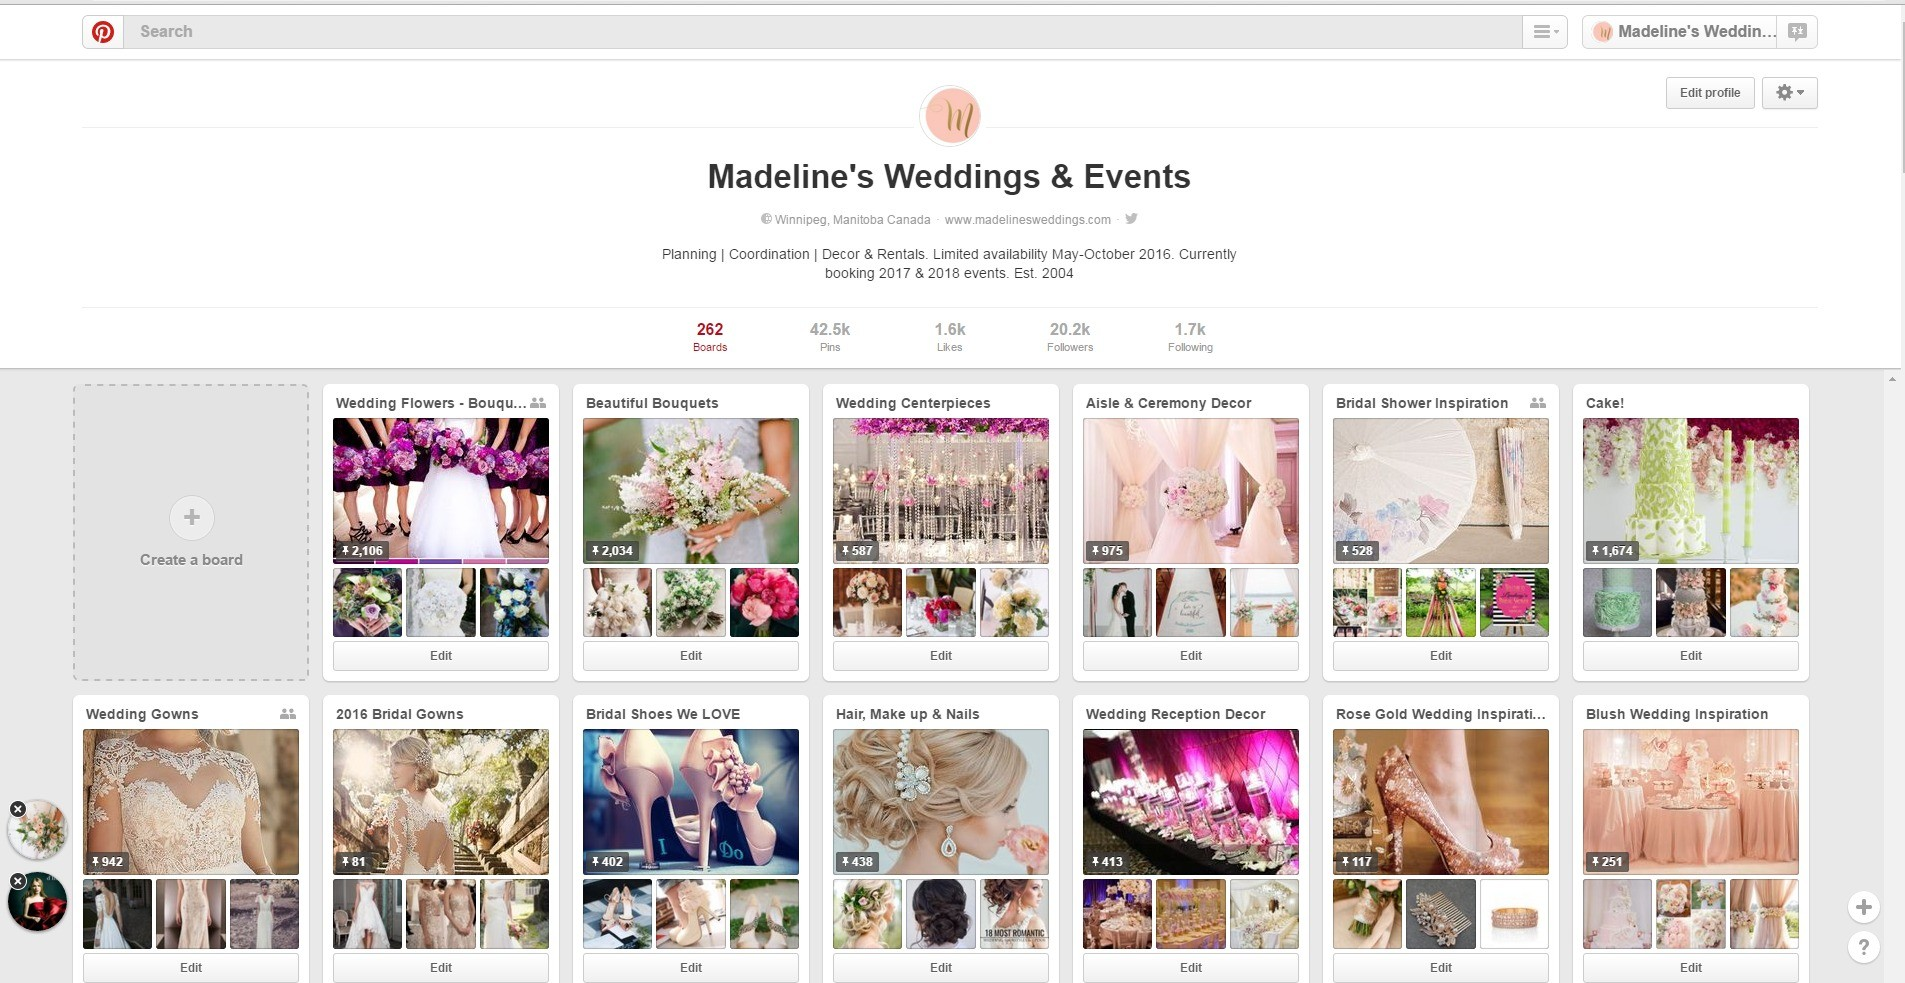 Wedding Inspiration on Pinterest!